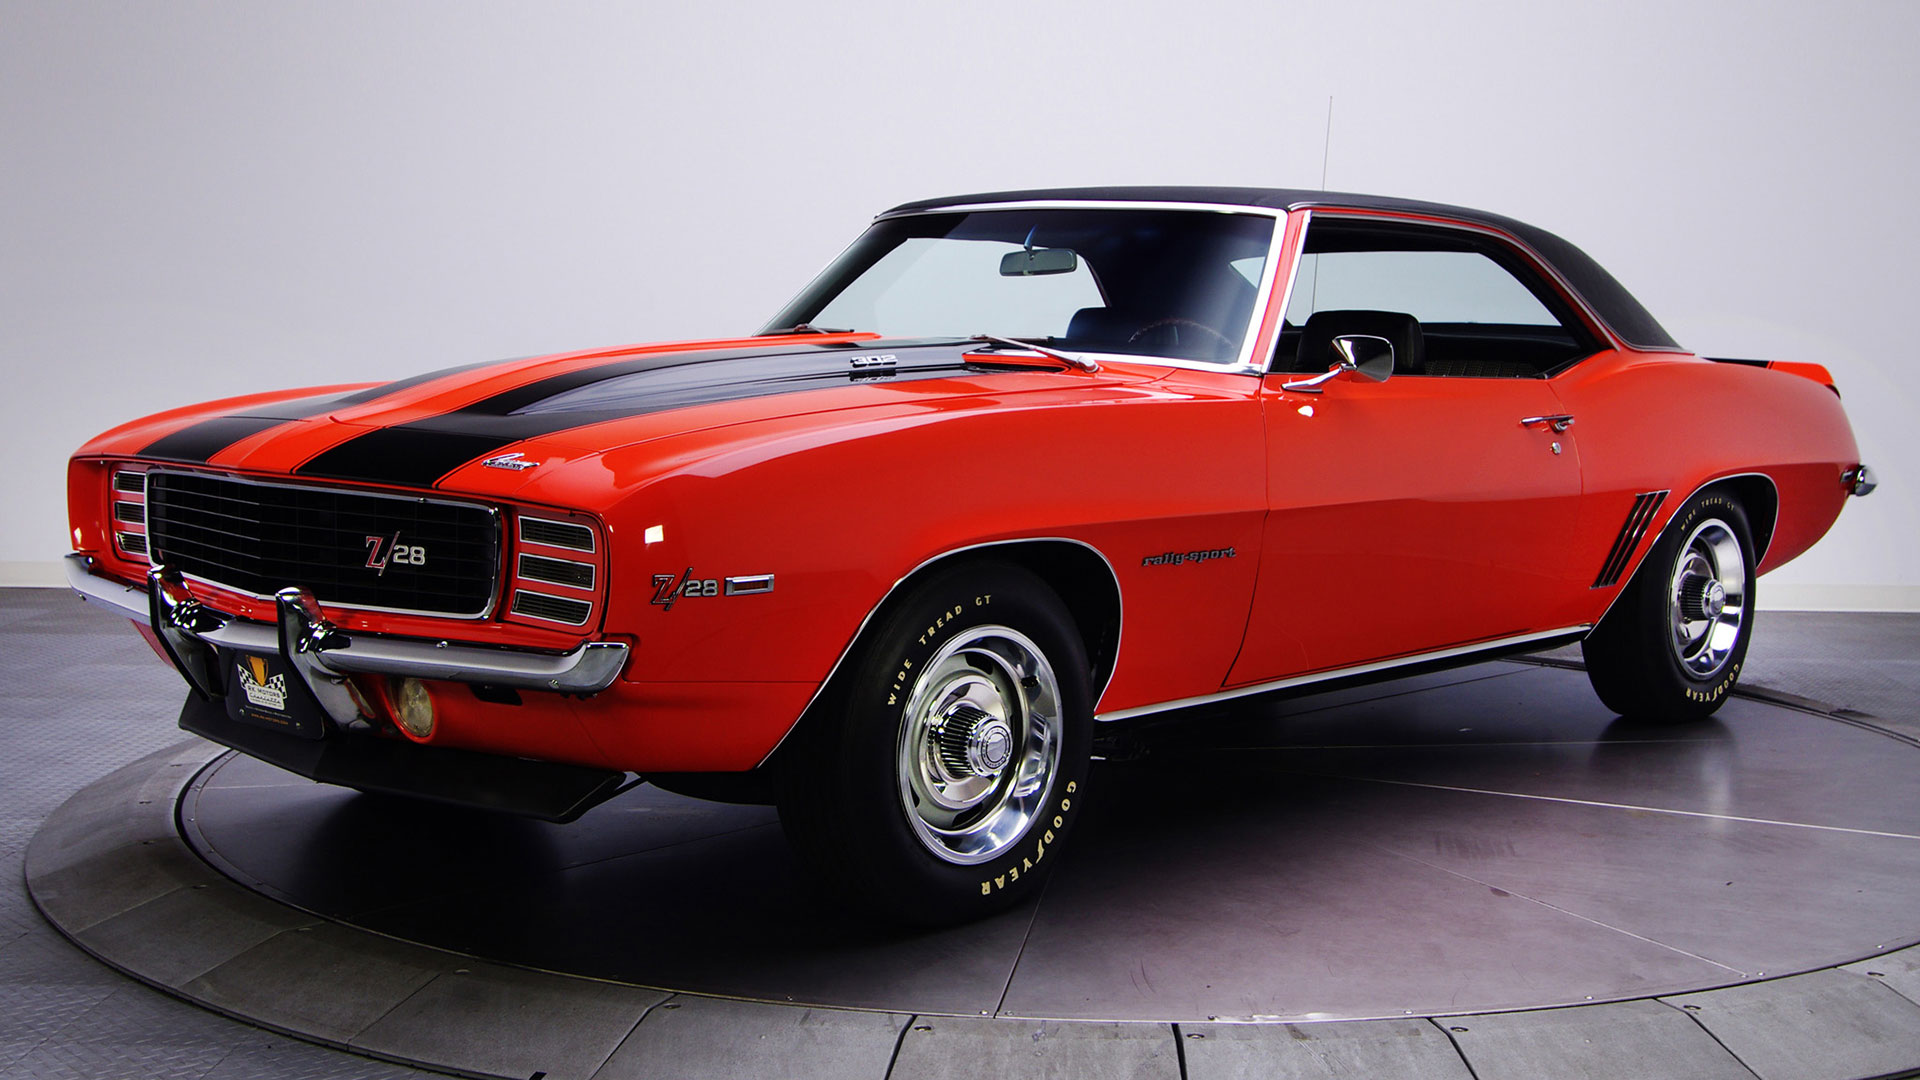 Our list of sexy cars includes the 1969 Camaro Z28 RS